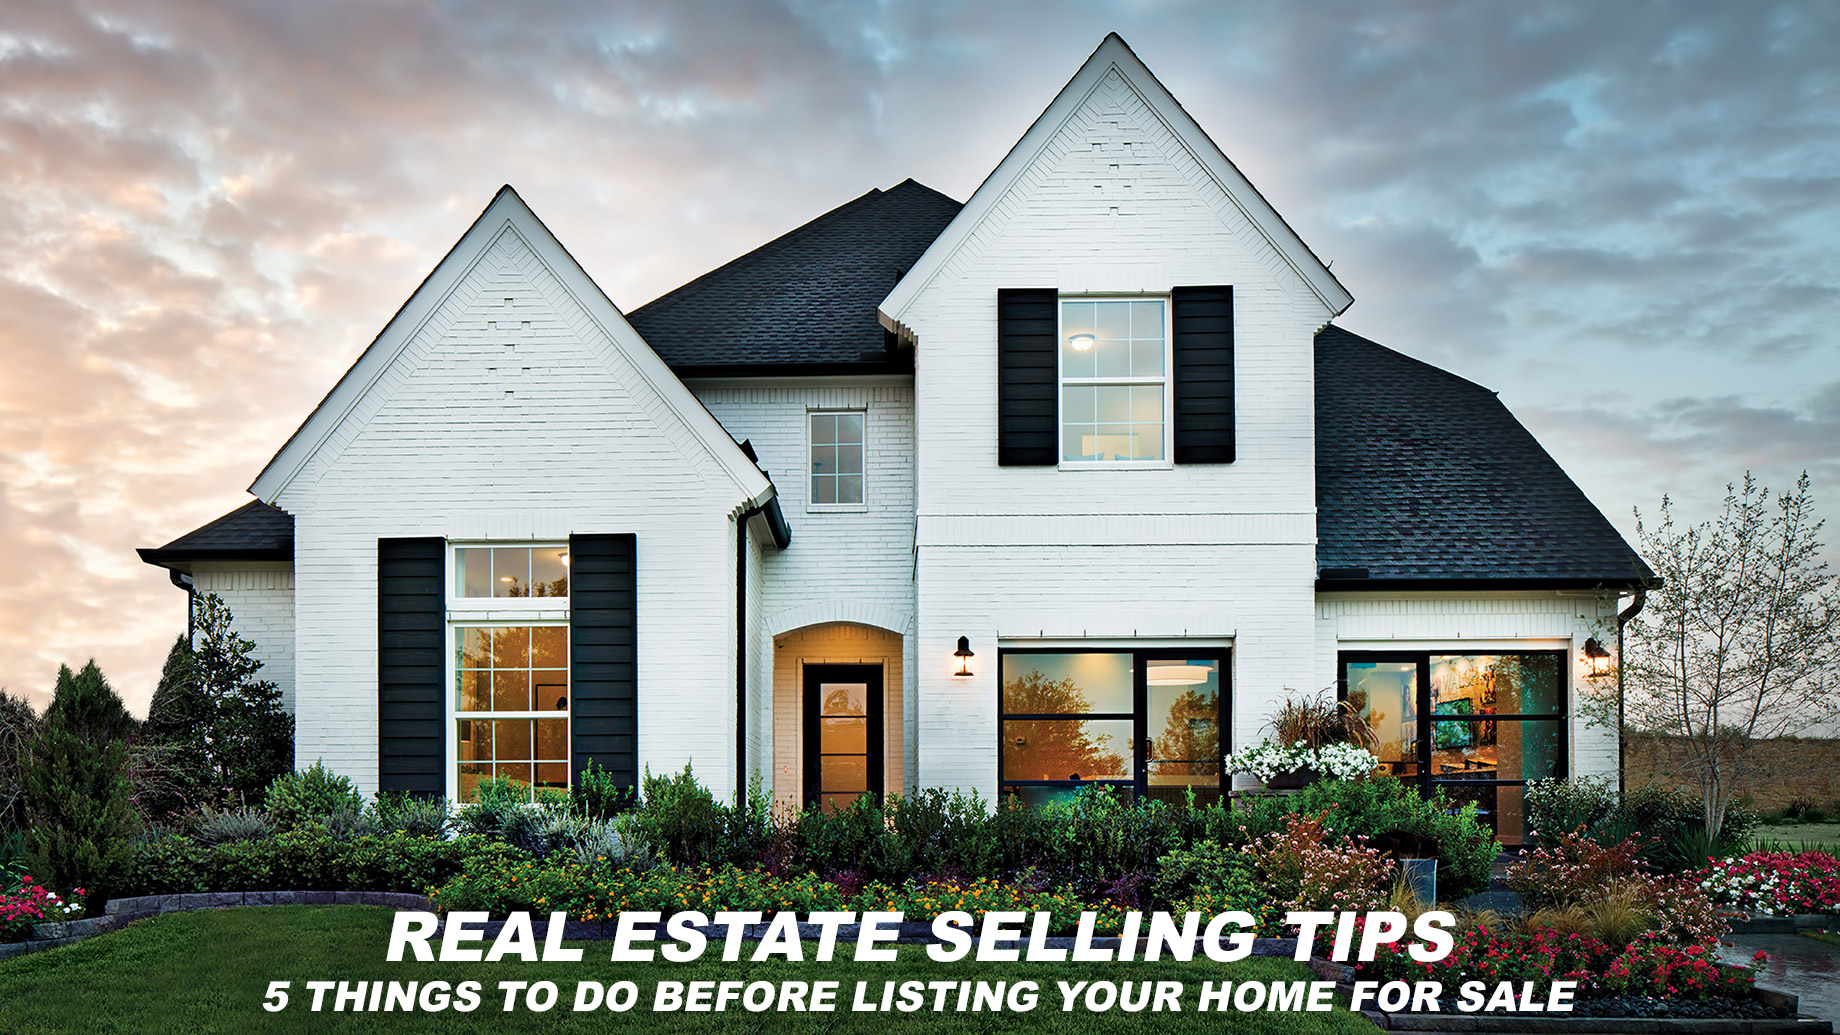 Real Estate Selling Tips - 5 Things to Do Before Listing Your Home For Sale